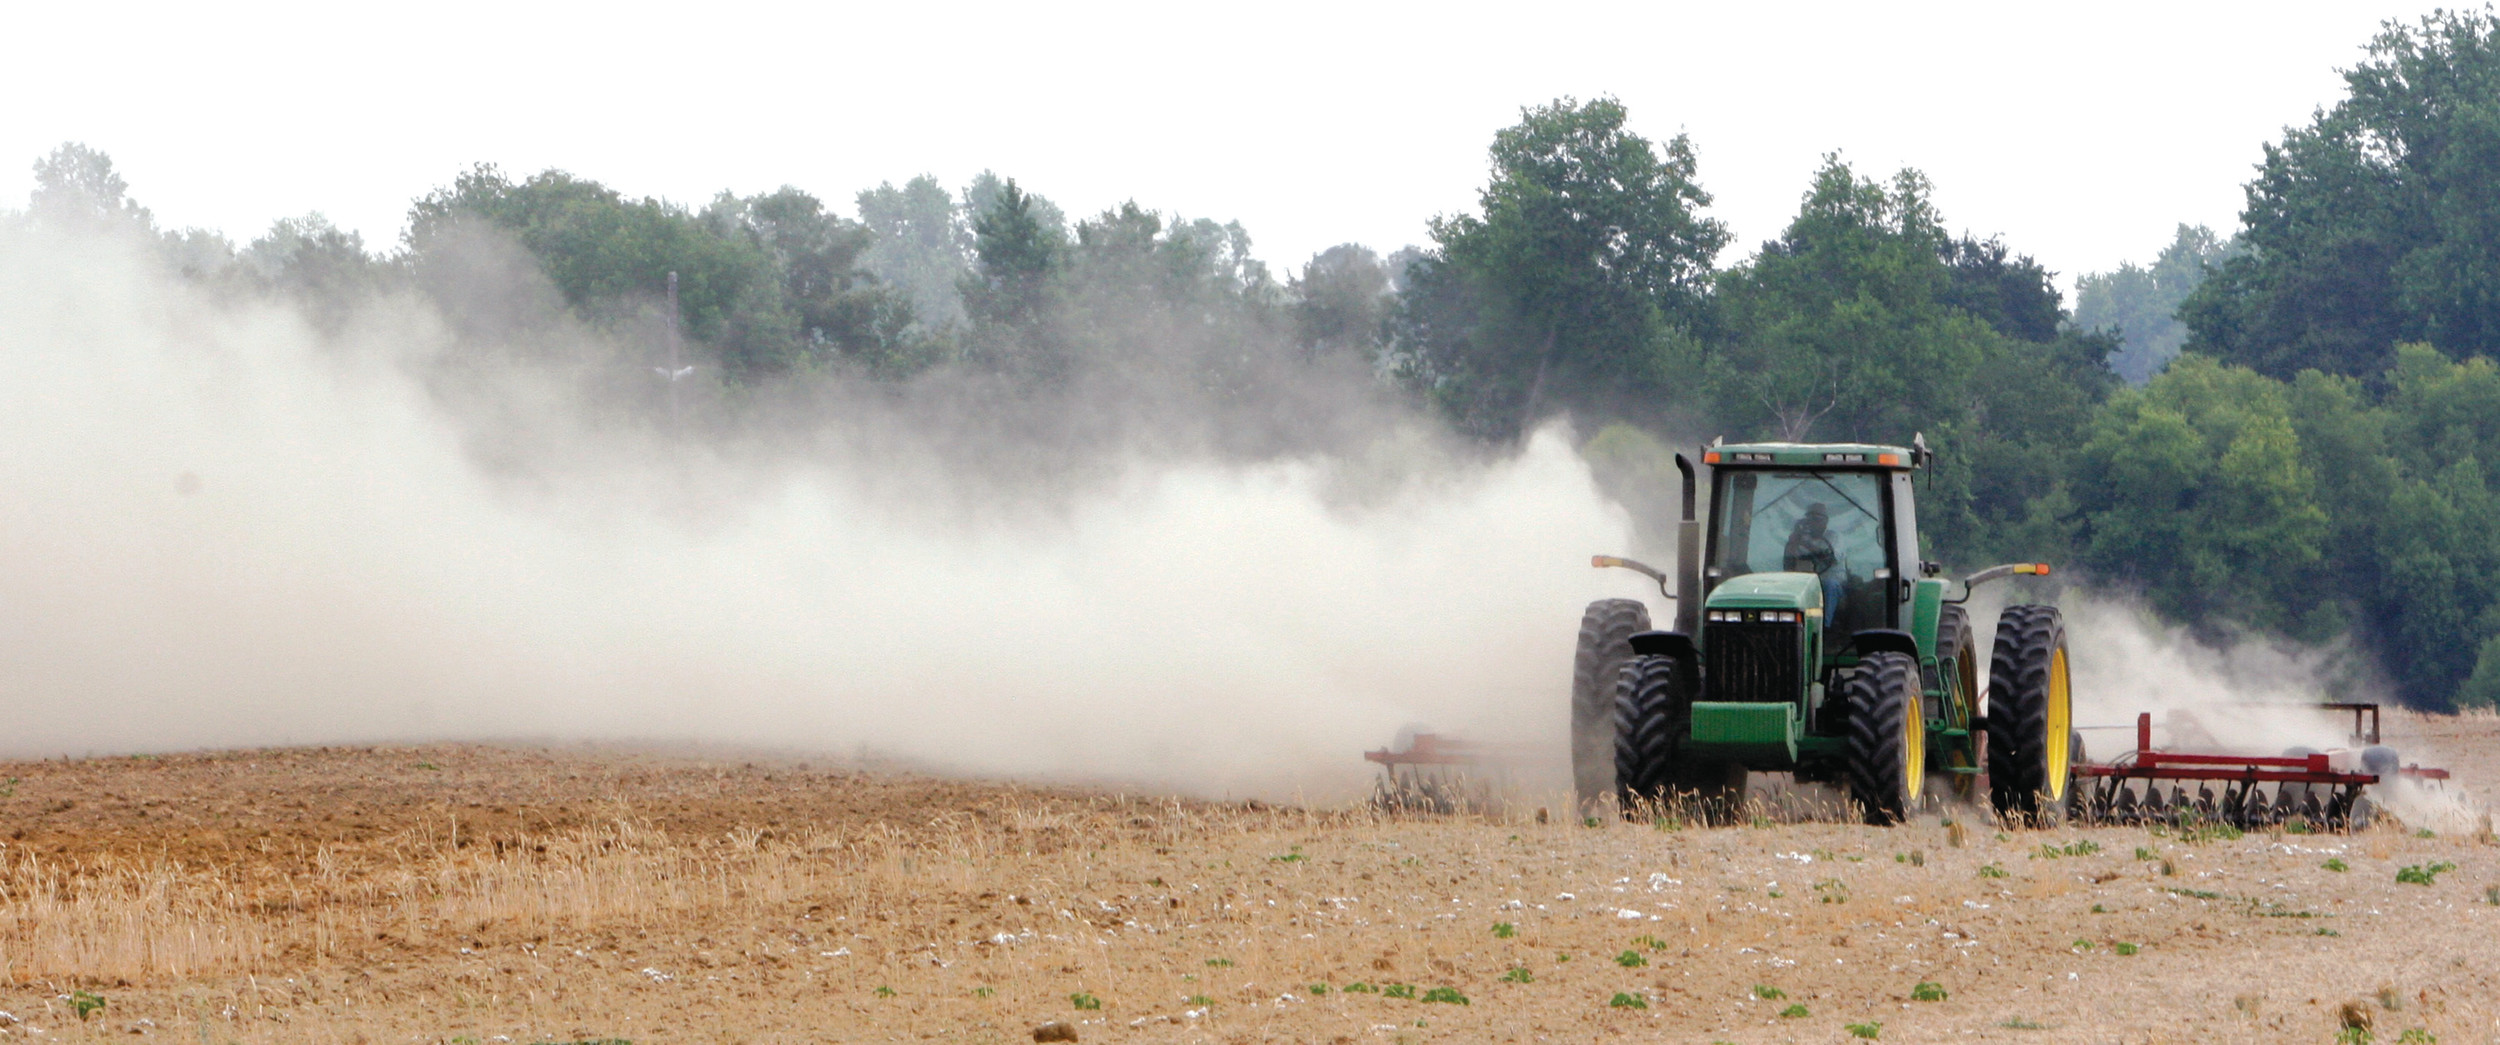 A farm tractor scatters dust in 2007 as it moves across a field on a farm along state road 82 near Tifton, Georgia. Soil is an important natural resource that must be preserved against loss by such forces as wind erosion.